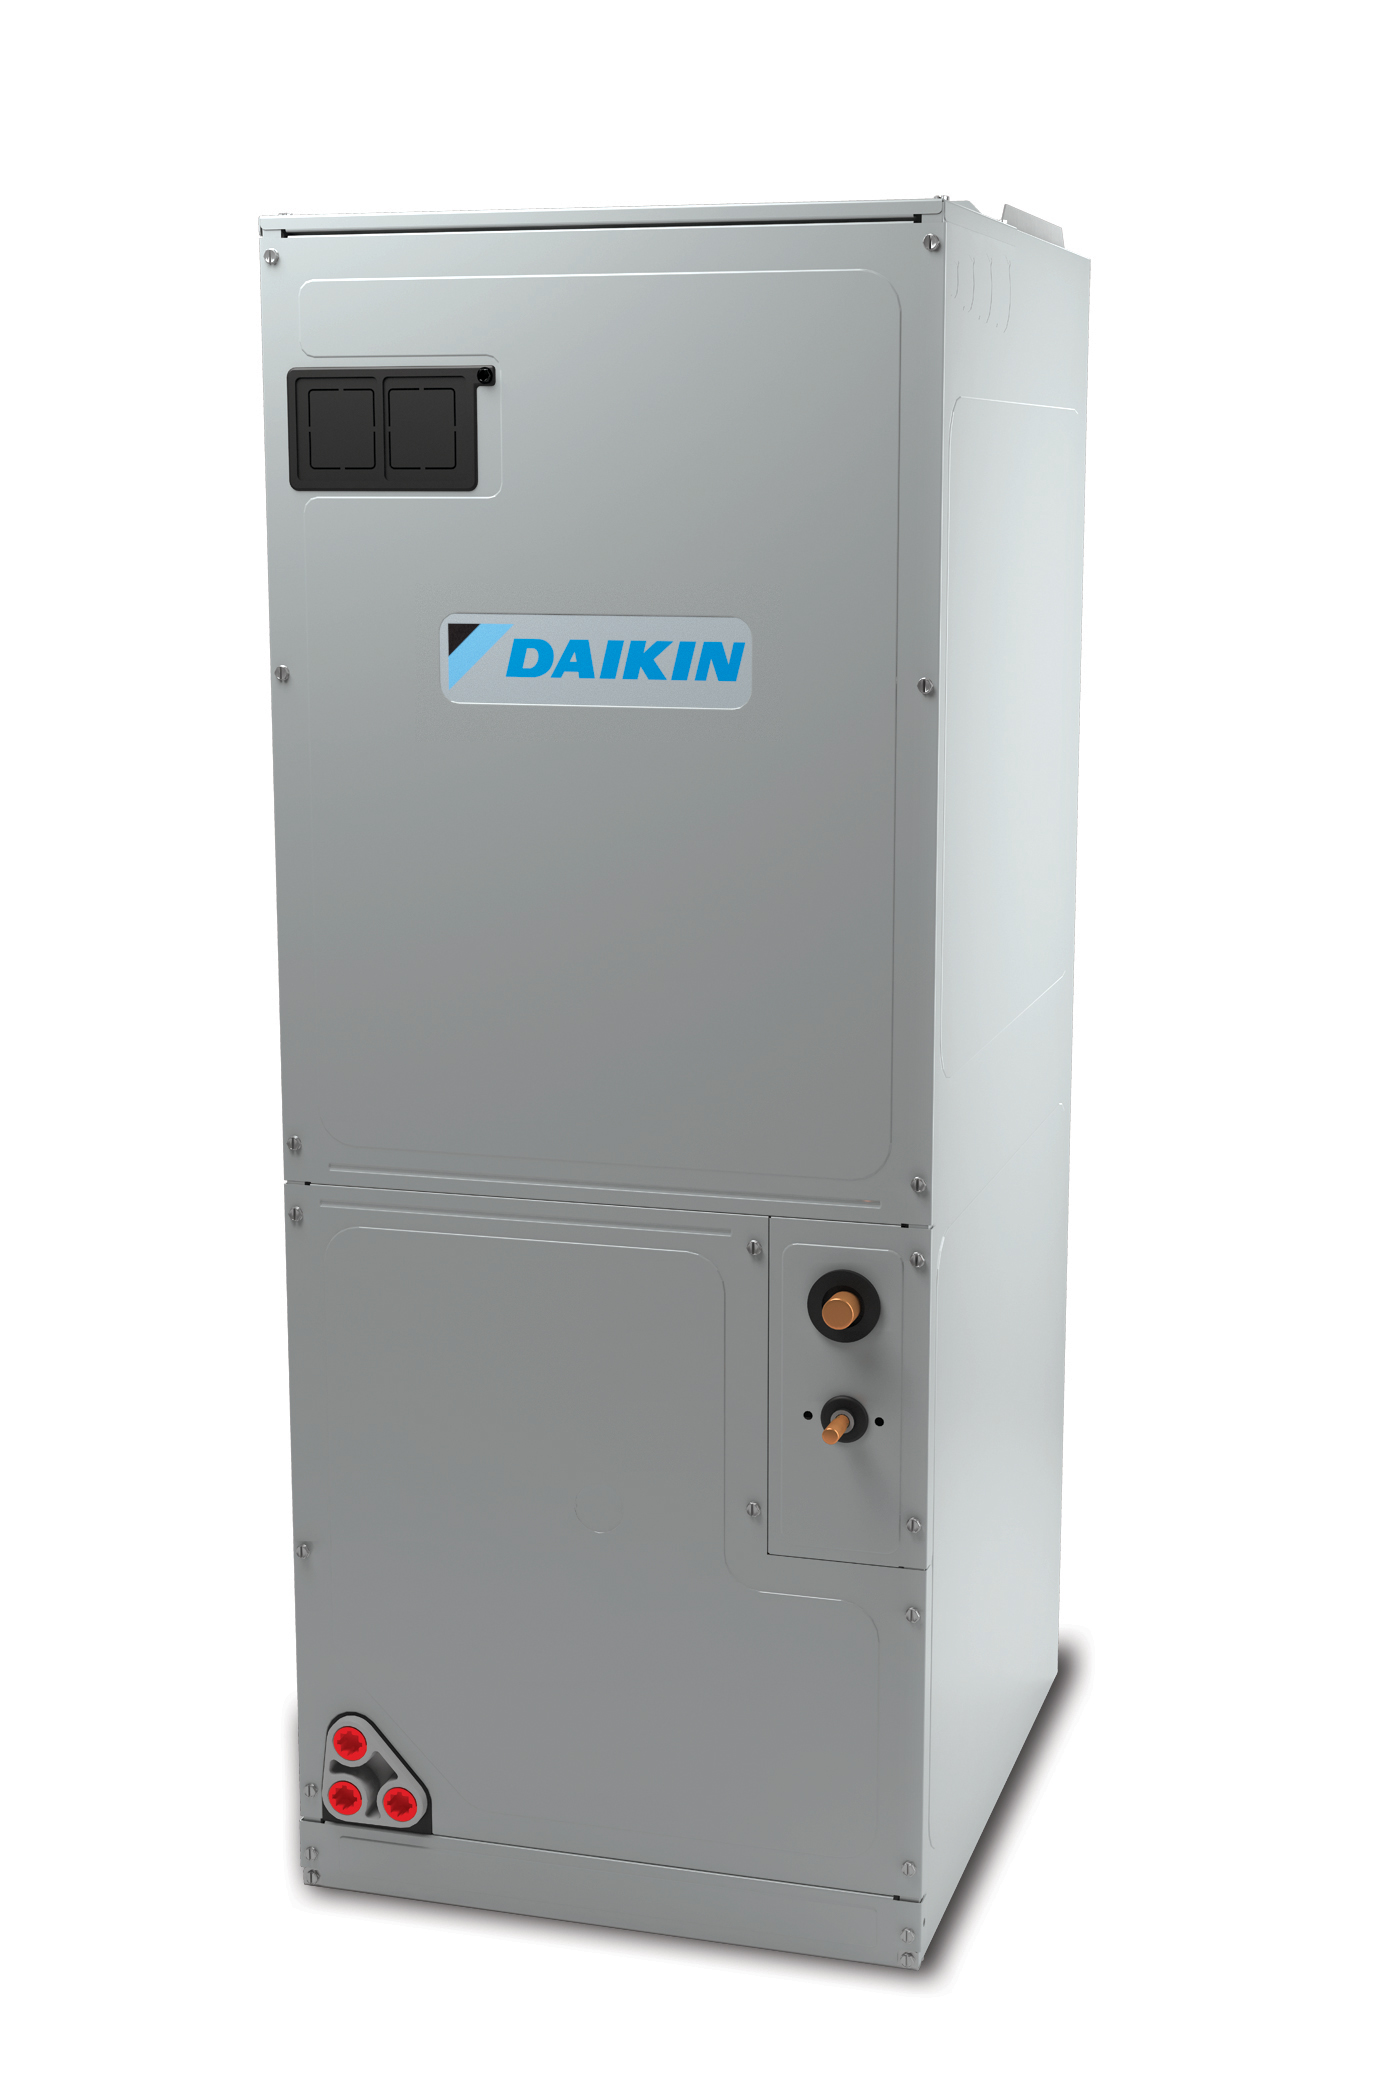 MULTI-POSITION VARIABLE-SPEED AIR HANDLER